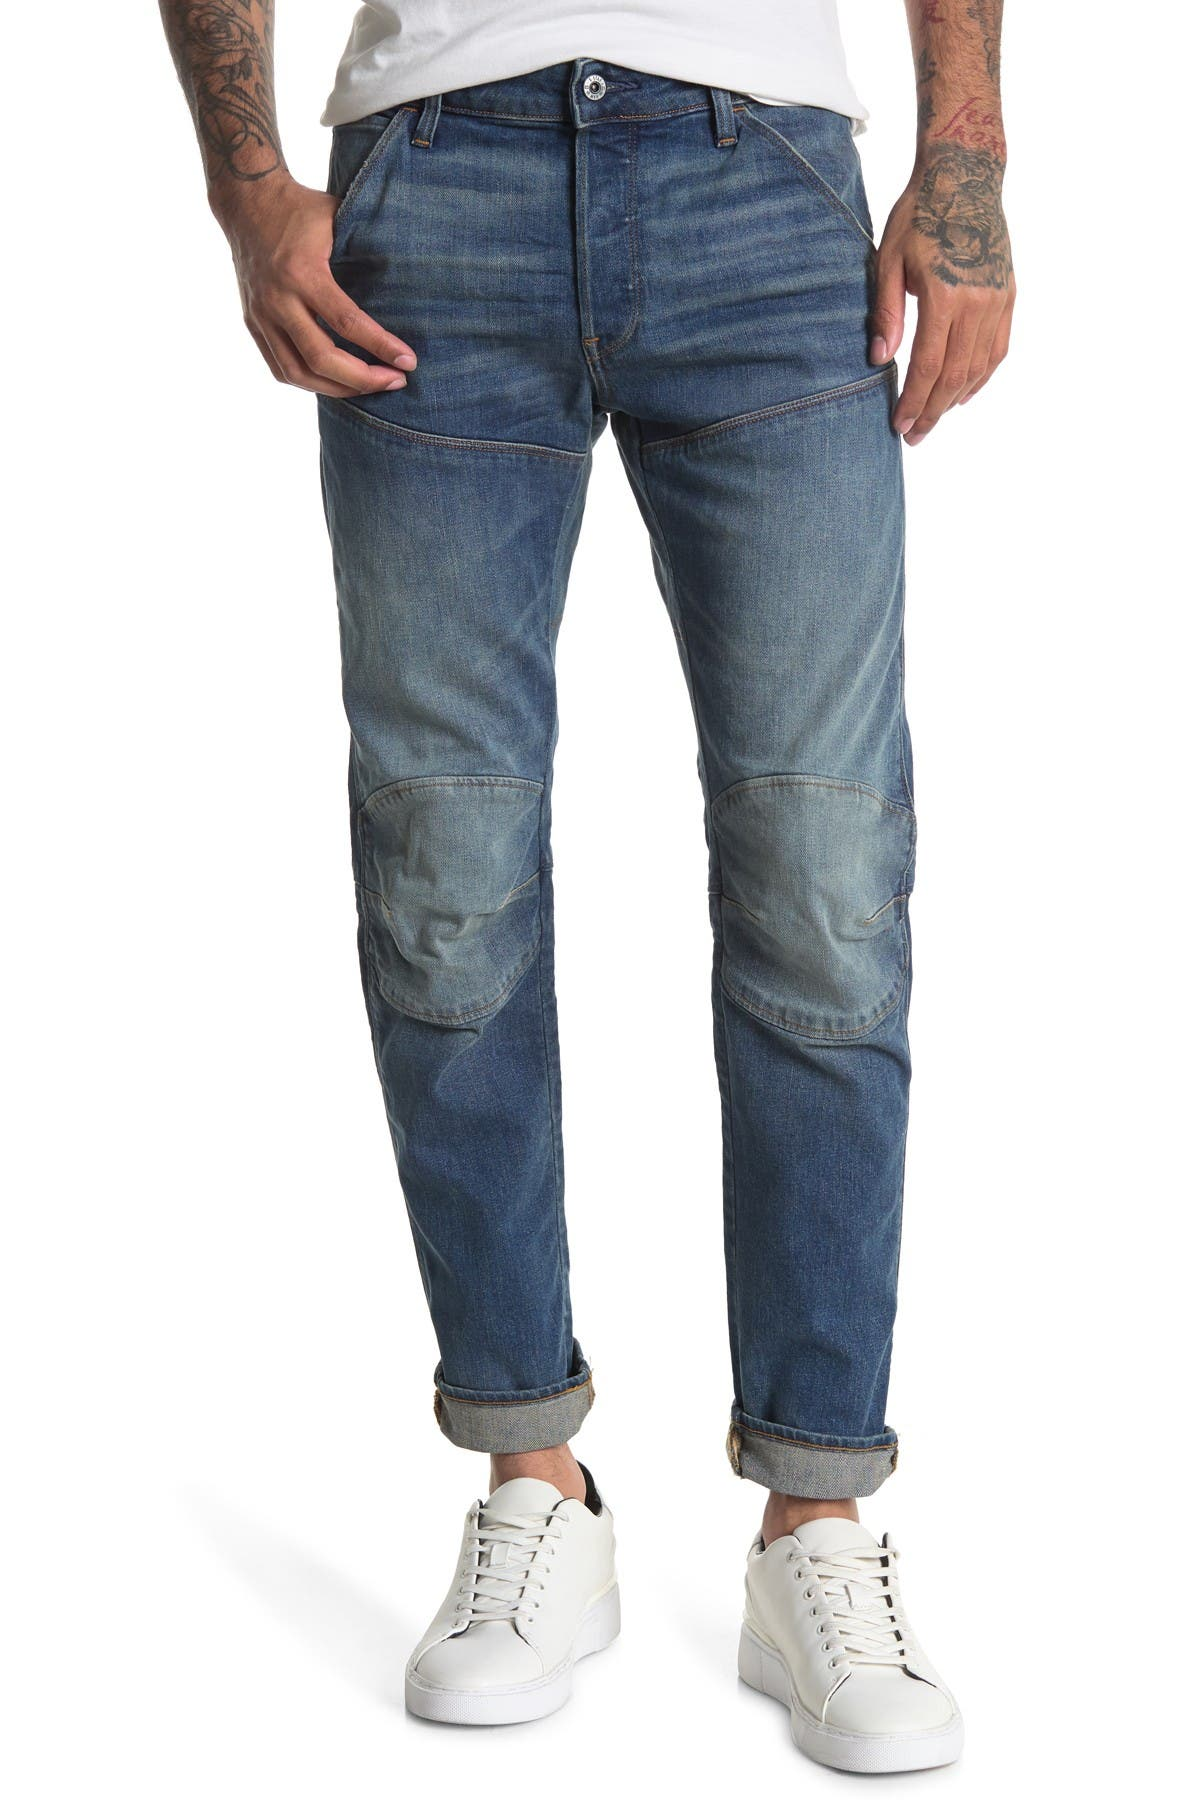 Image of G-STAR RAW 5620 3D Slim Fit Jeans